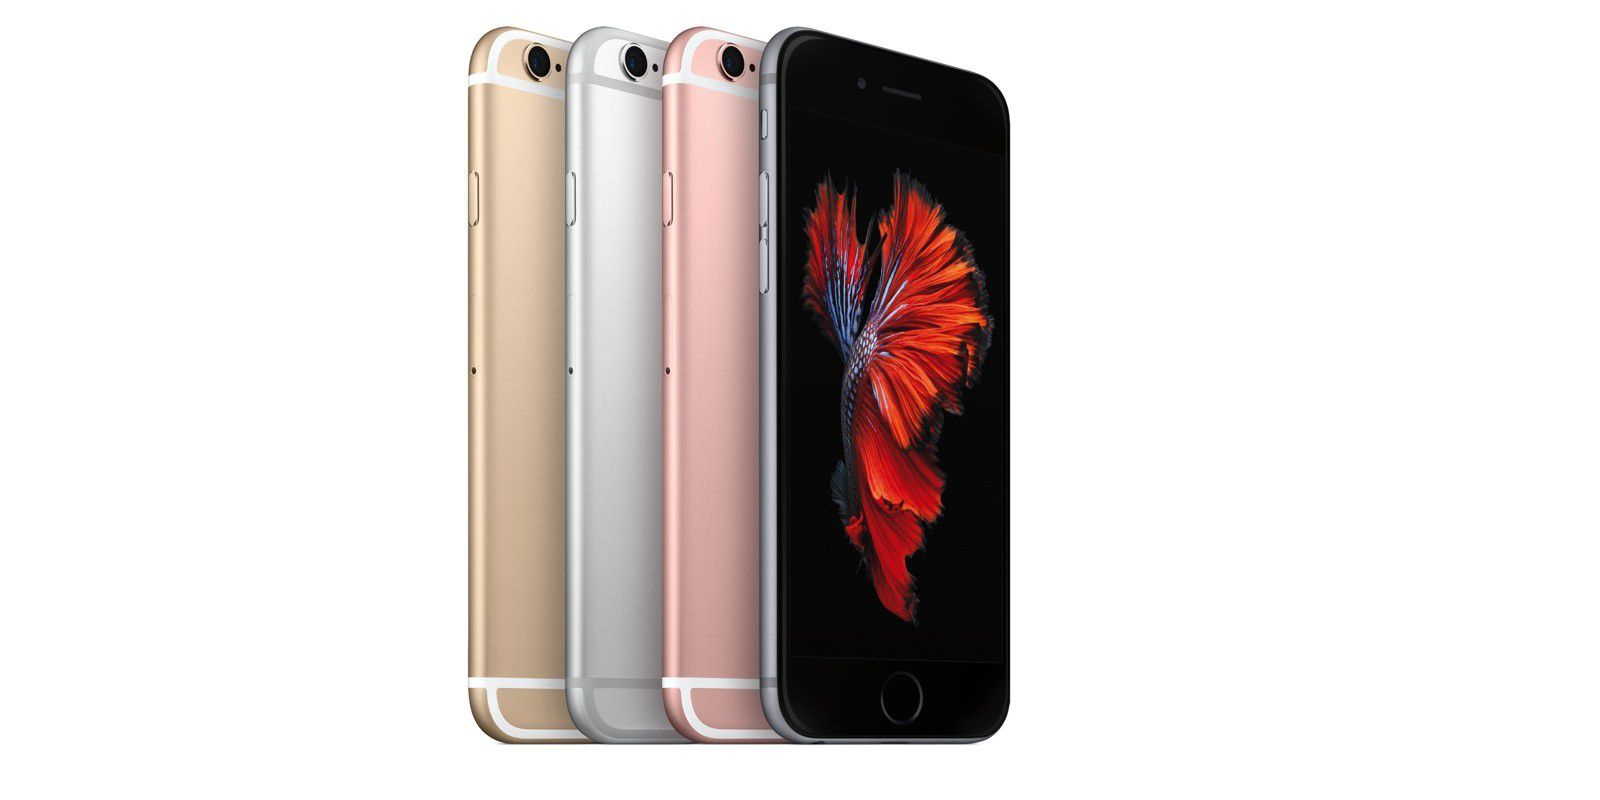 iphone 6s plus mit 2 gb ram macwelt. Black Bedroom Furniture Sets. Home Design Ideas